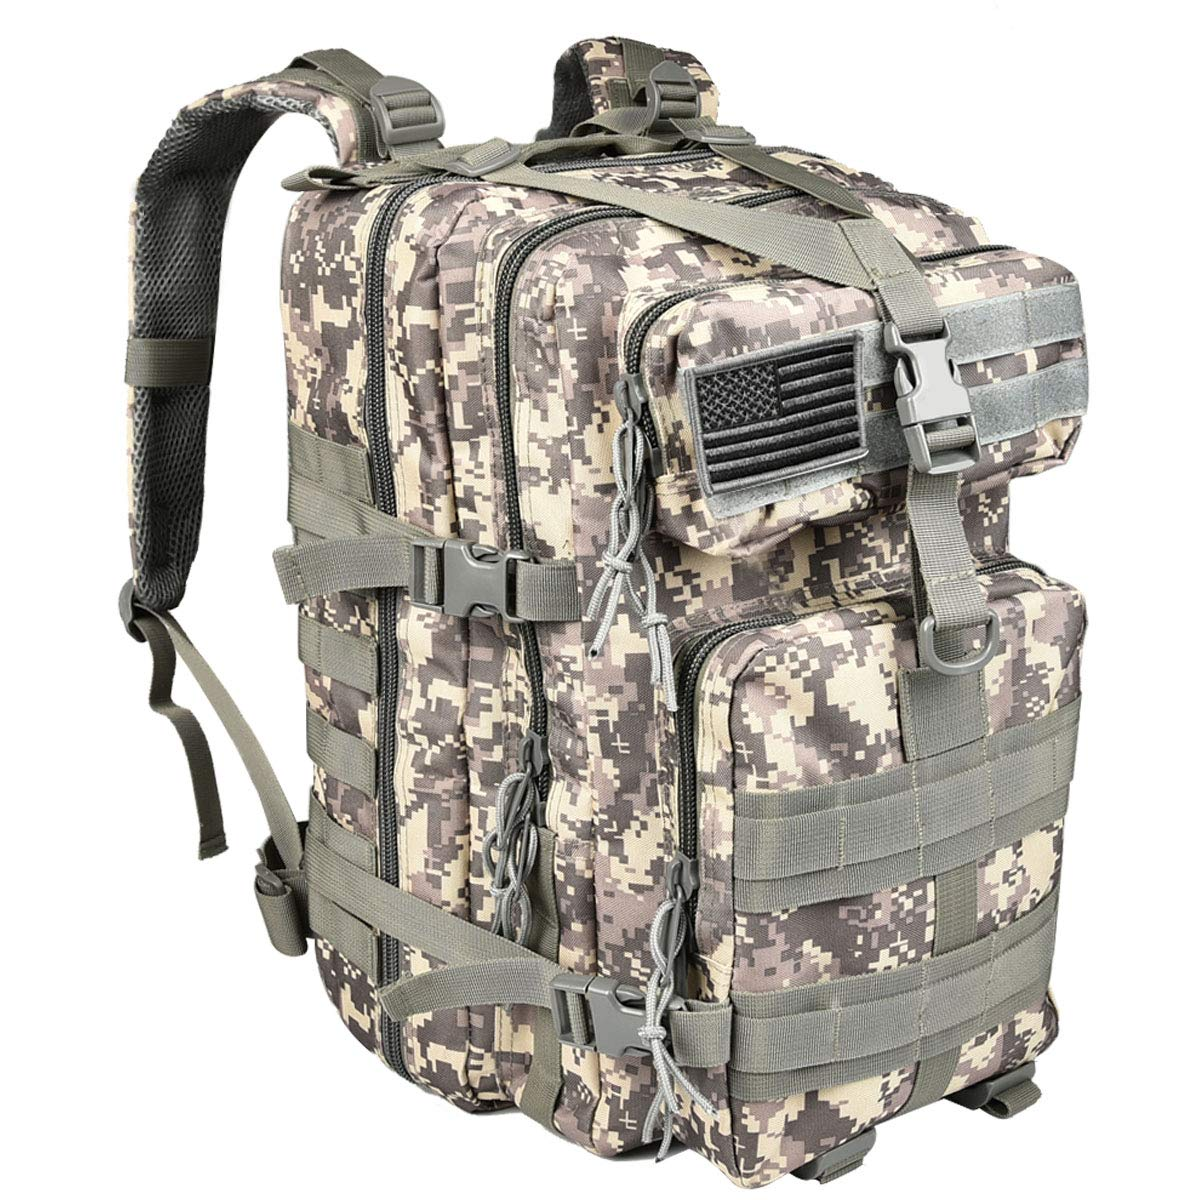 NOOLA 40L Military Tactical Army Backpack 3 Day Pack Molle Bag Backpack Rucksacks for Outdoor Hiking Camping Trekking Hunting with Flag Patch Camouflage ACU